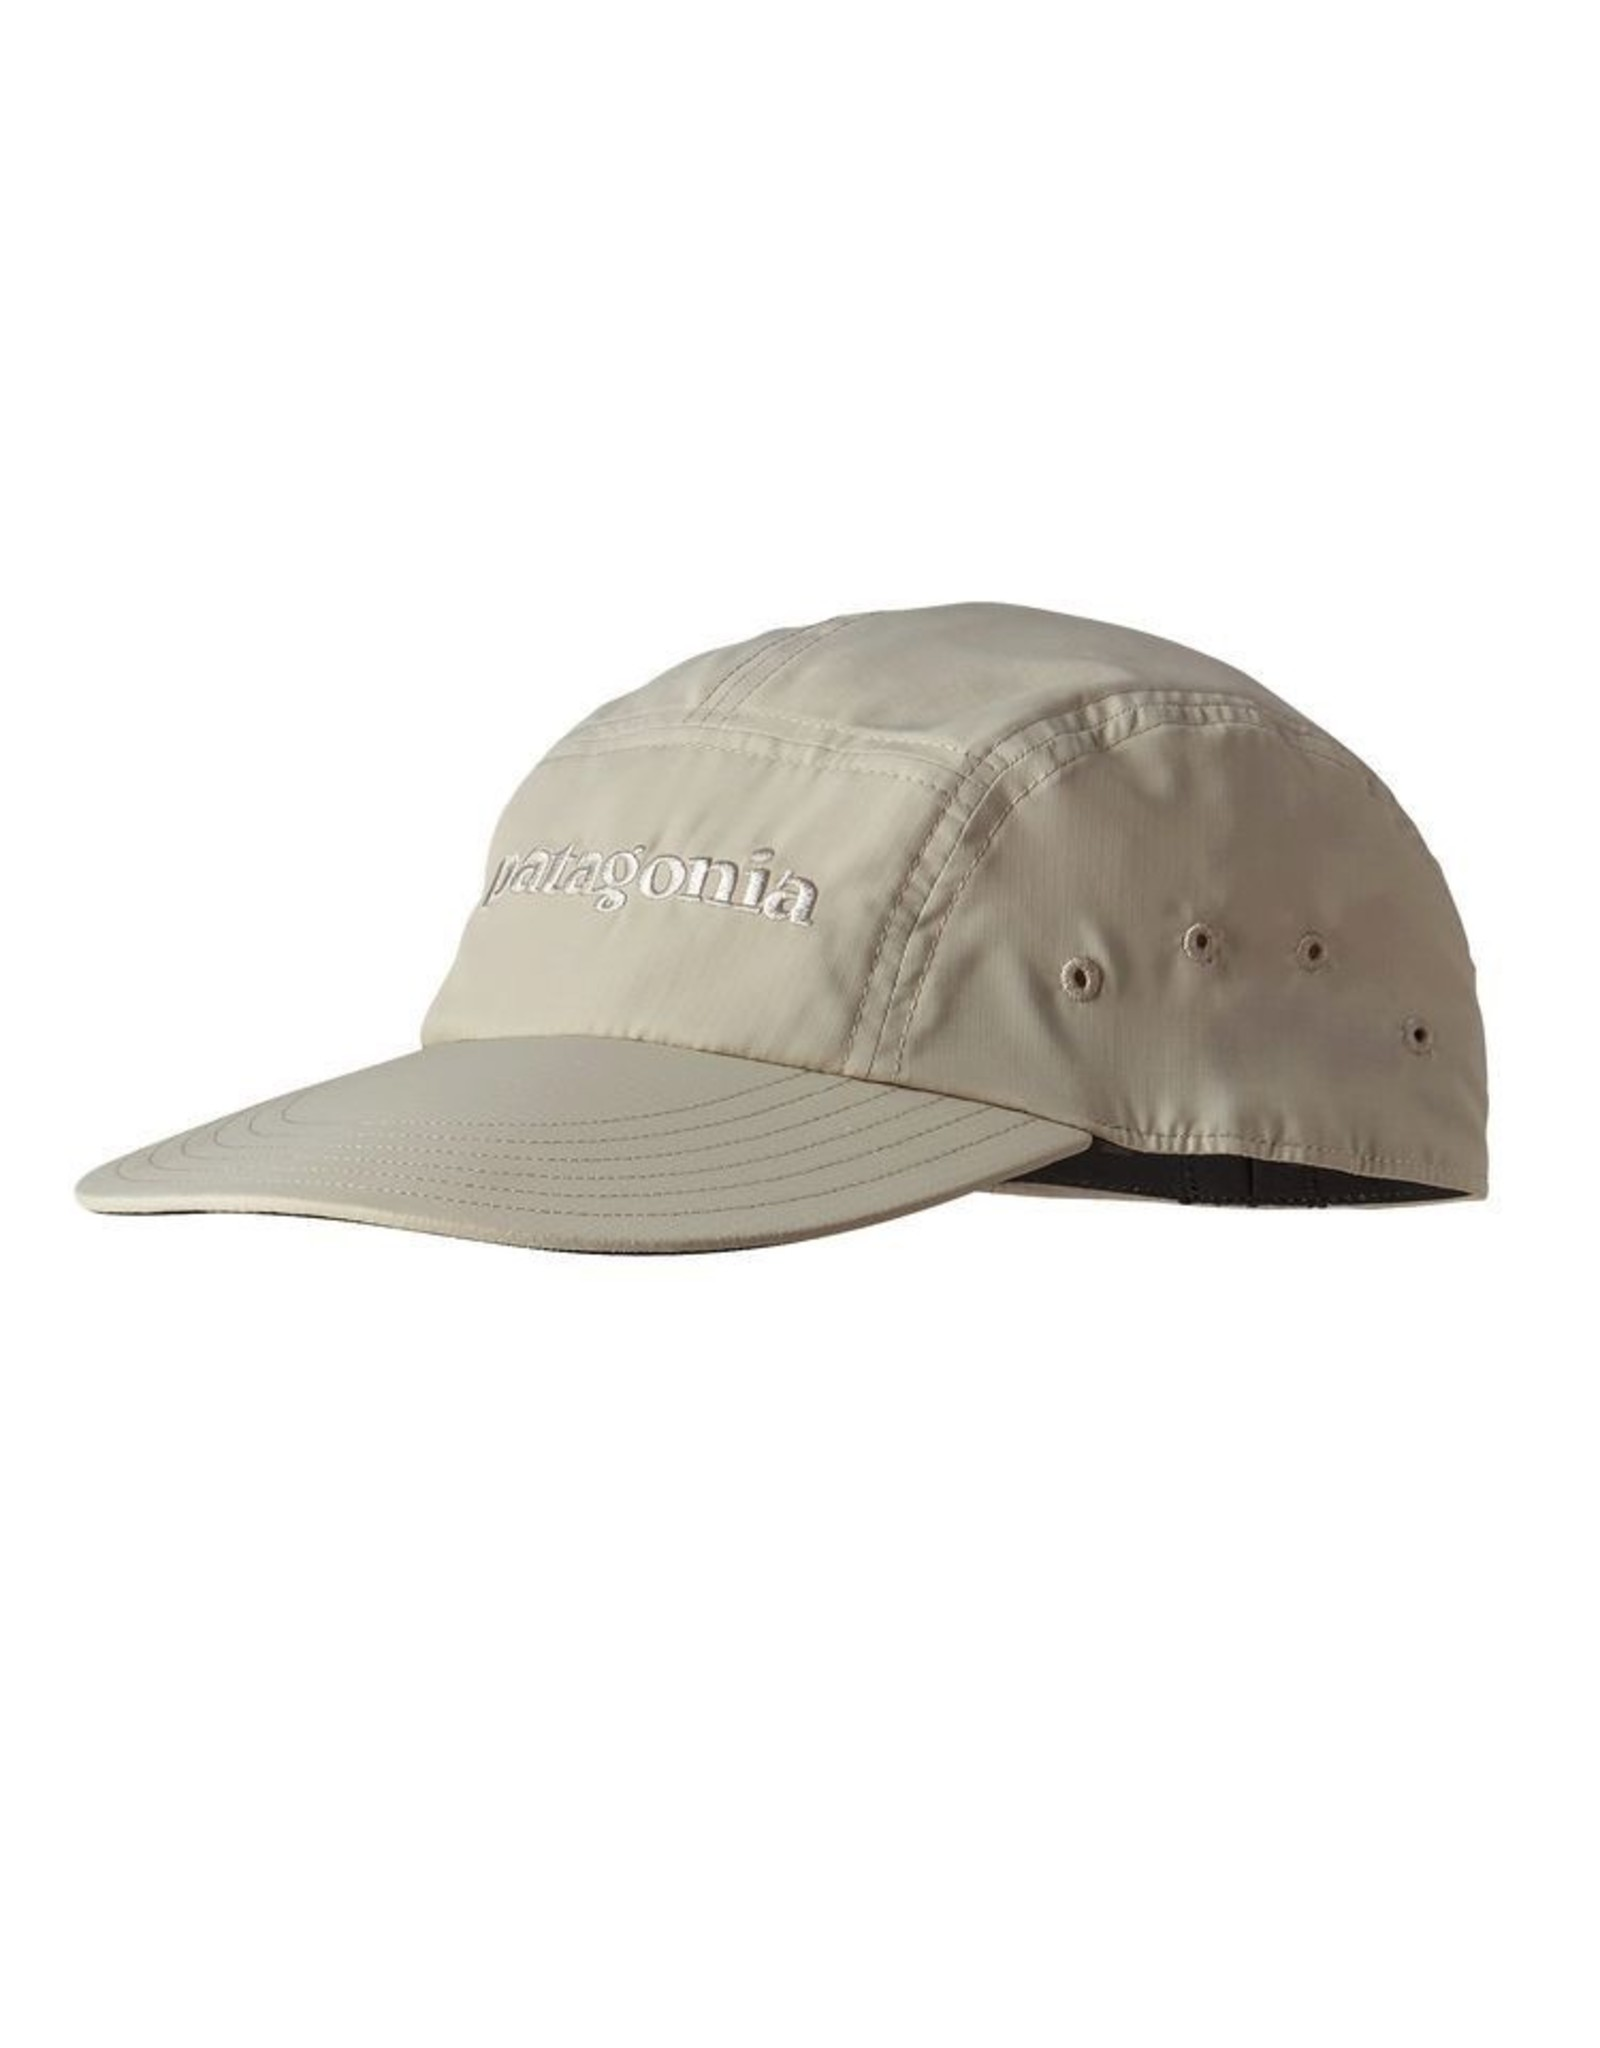 Patagonia Patagonia Longbill Stretch Fit Fly Fishing Cap